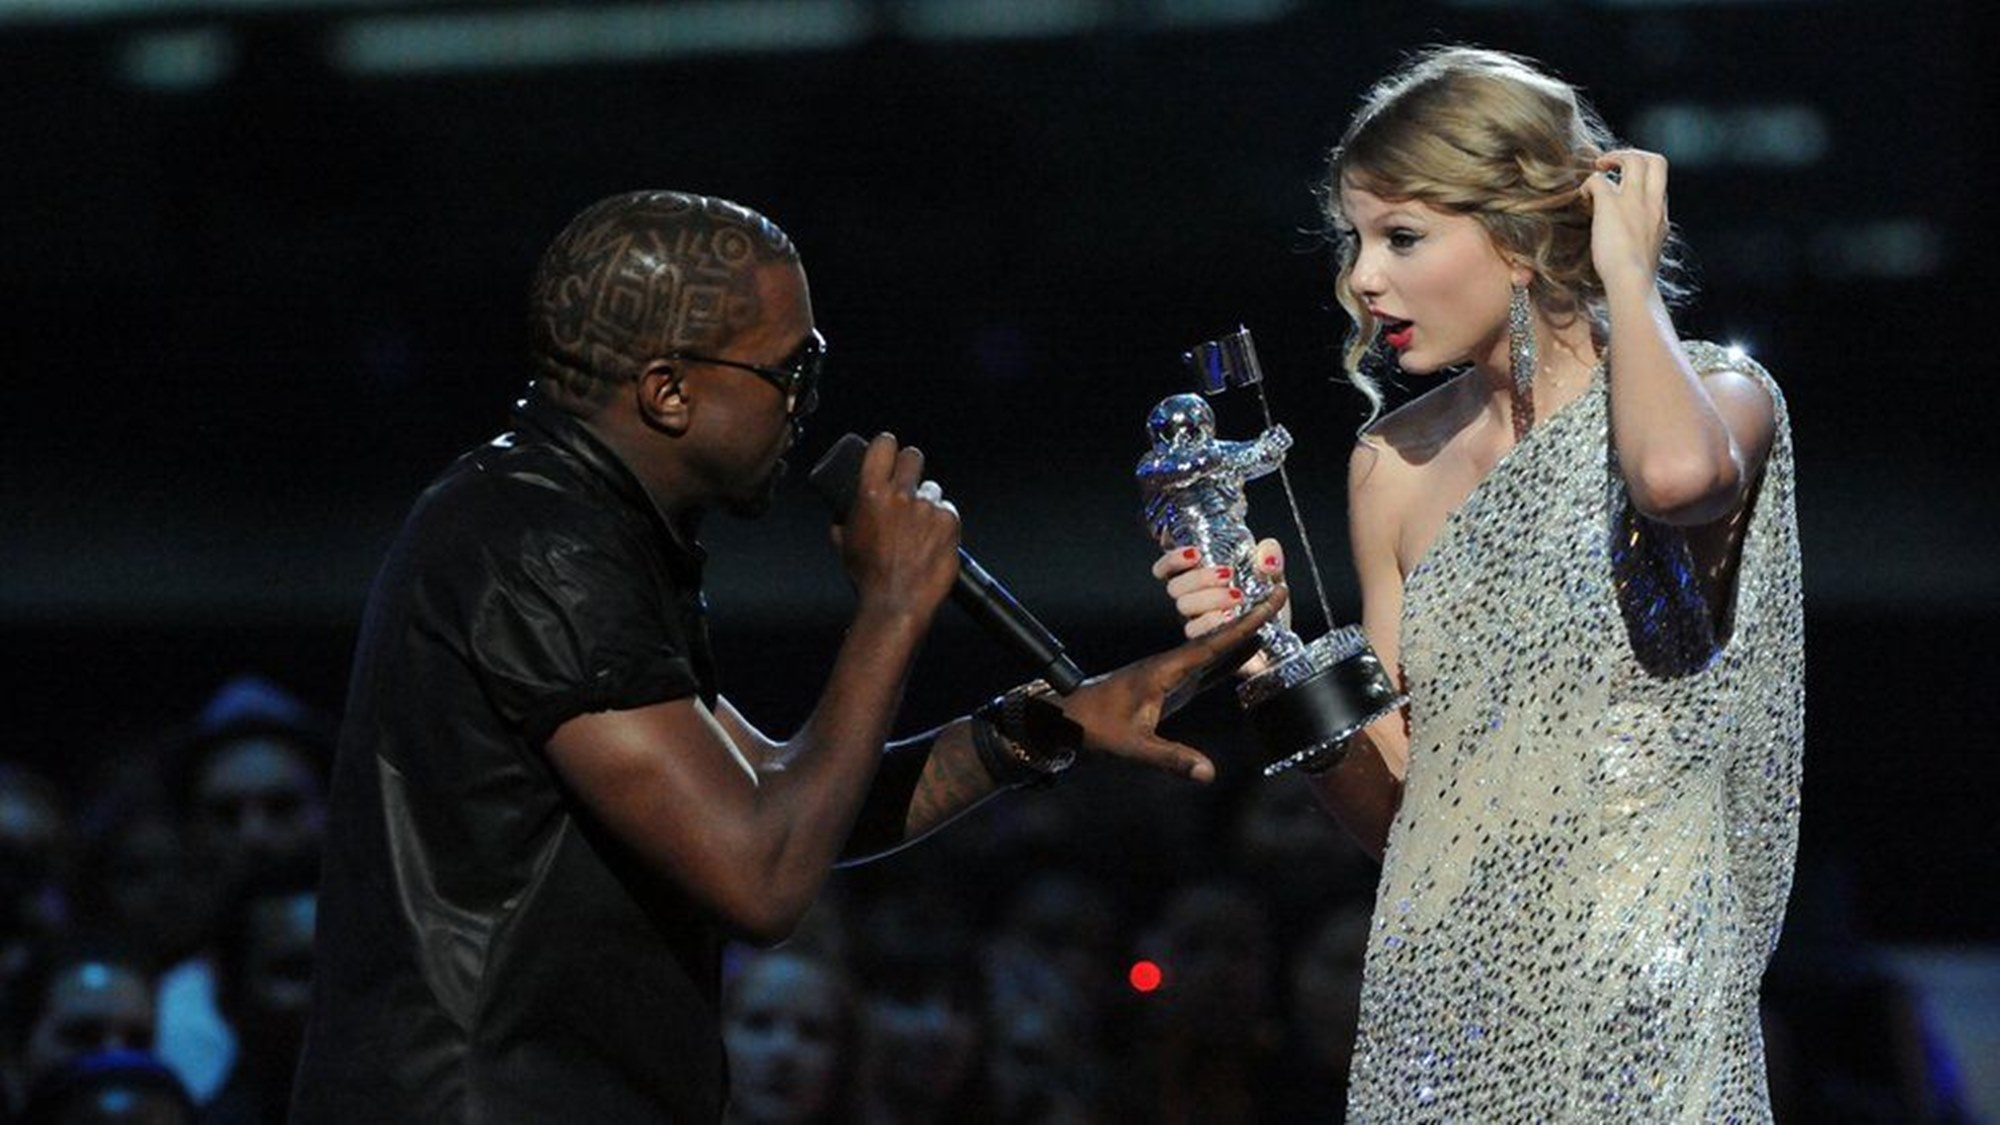 taylor-swifts-fans-say-obsessed-kanye-west-is-trying-to-get-headlines-and-her-attention-by-promising-to-get-her-masters-back-from-scooter-braun